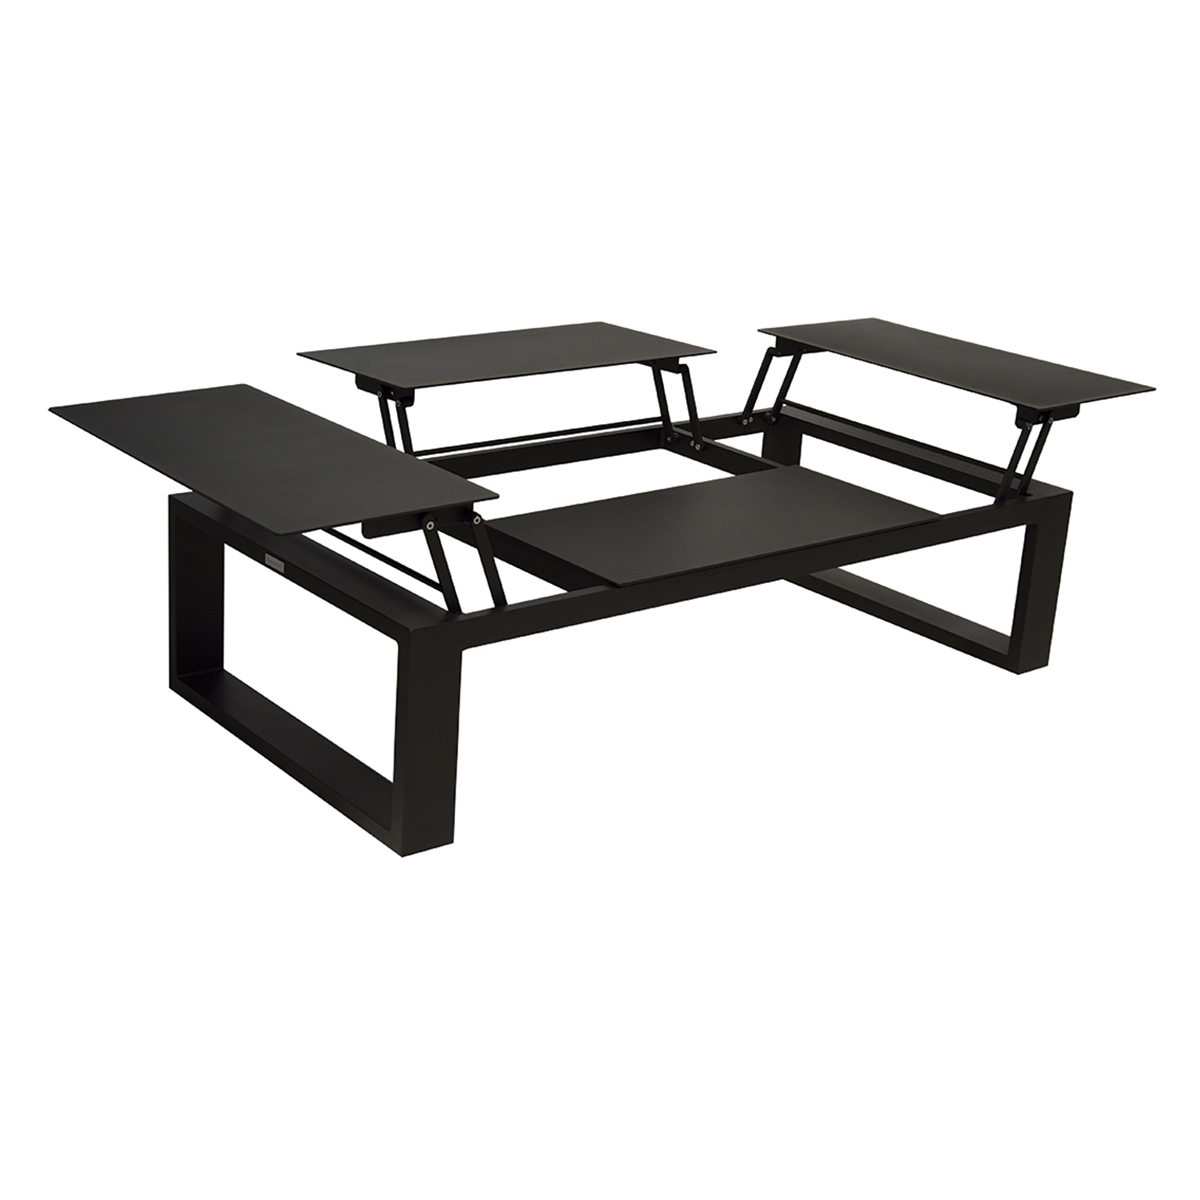 table basse avec plateau relevable zendart outdoor zendart design. Black Bedroom Furniture Sets. Home Design Ideas